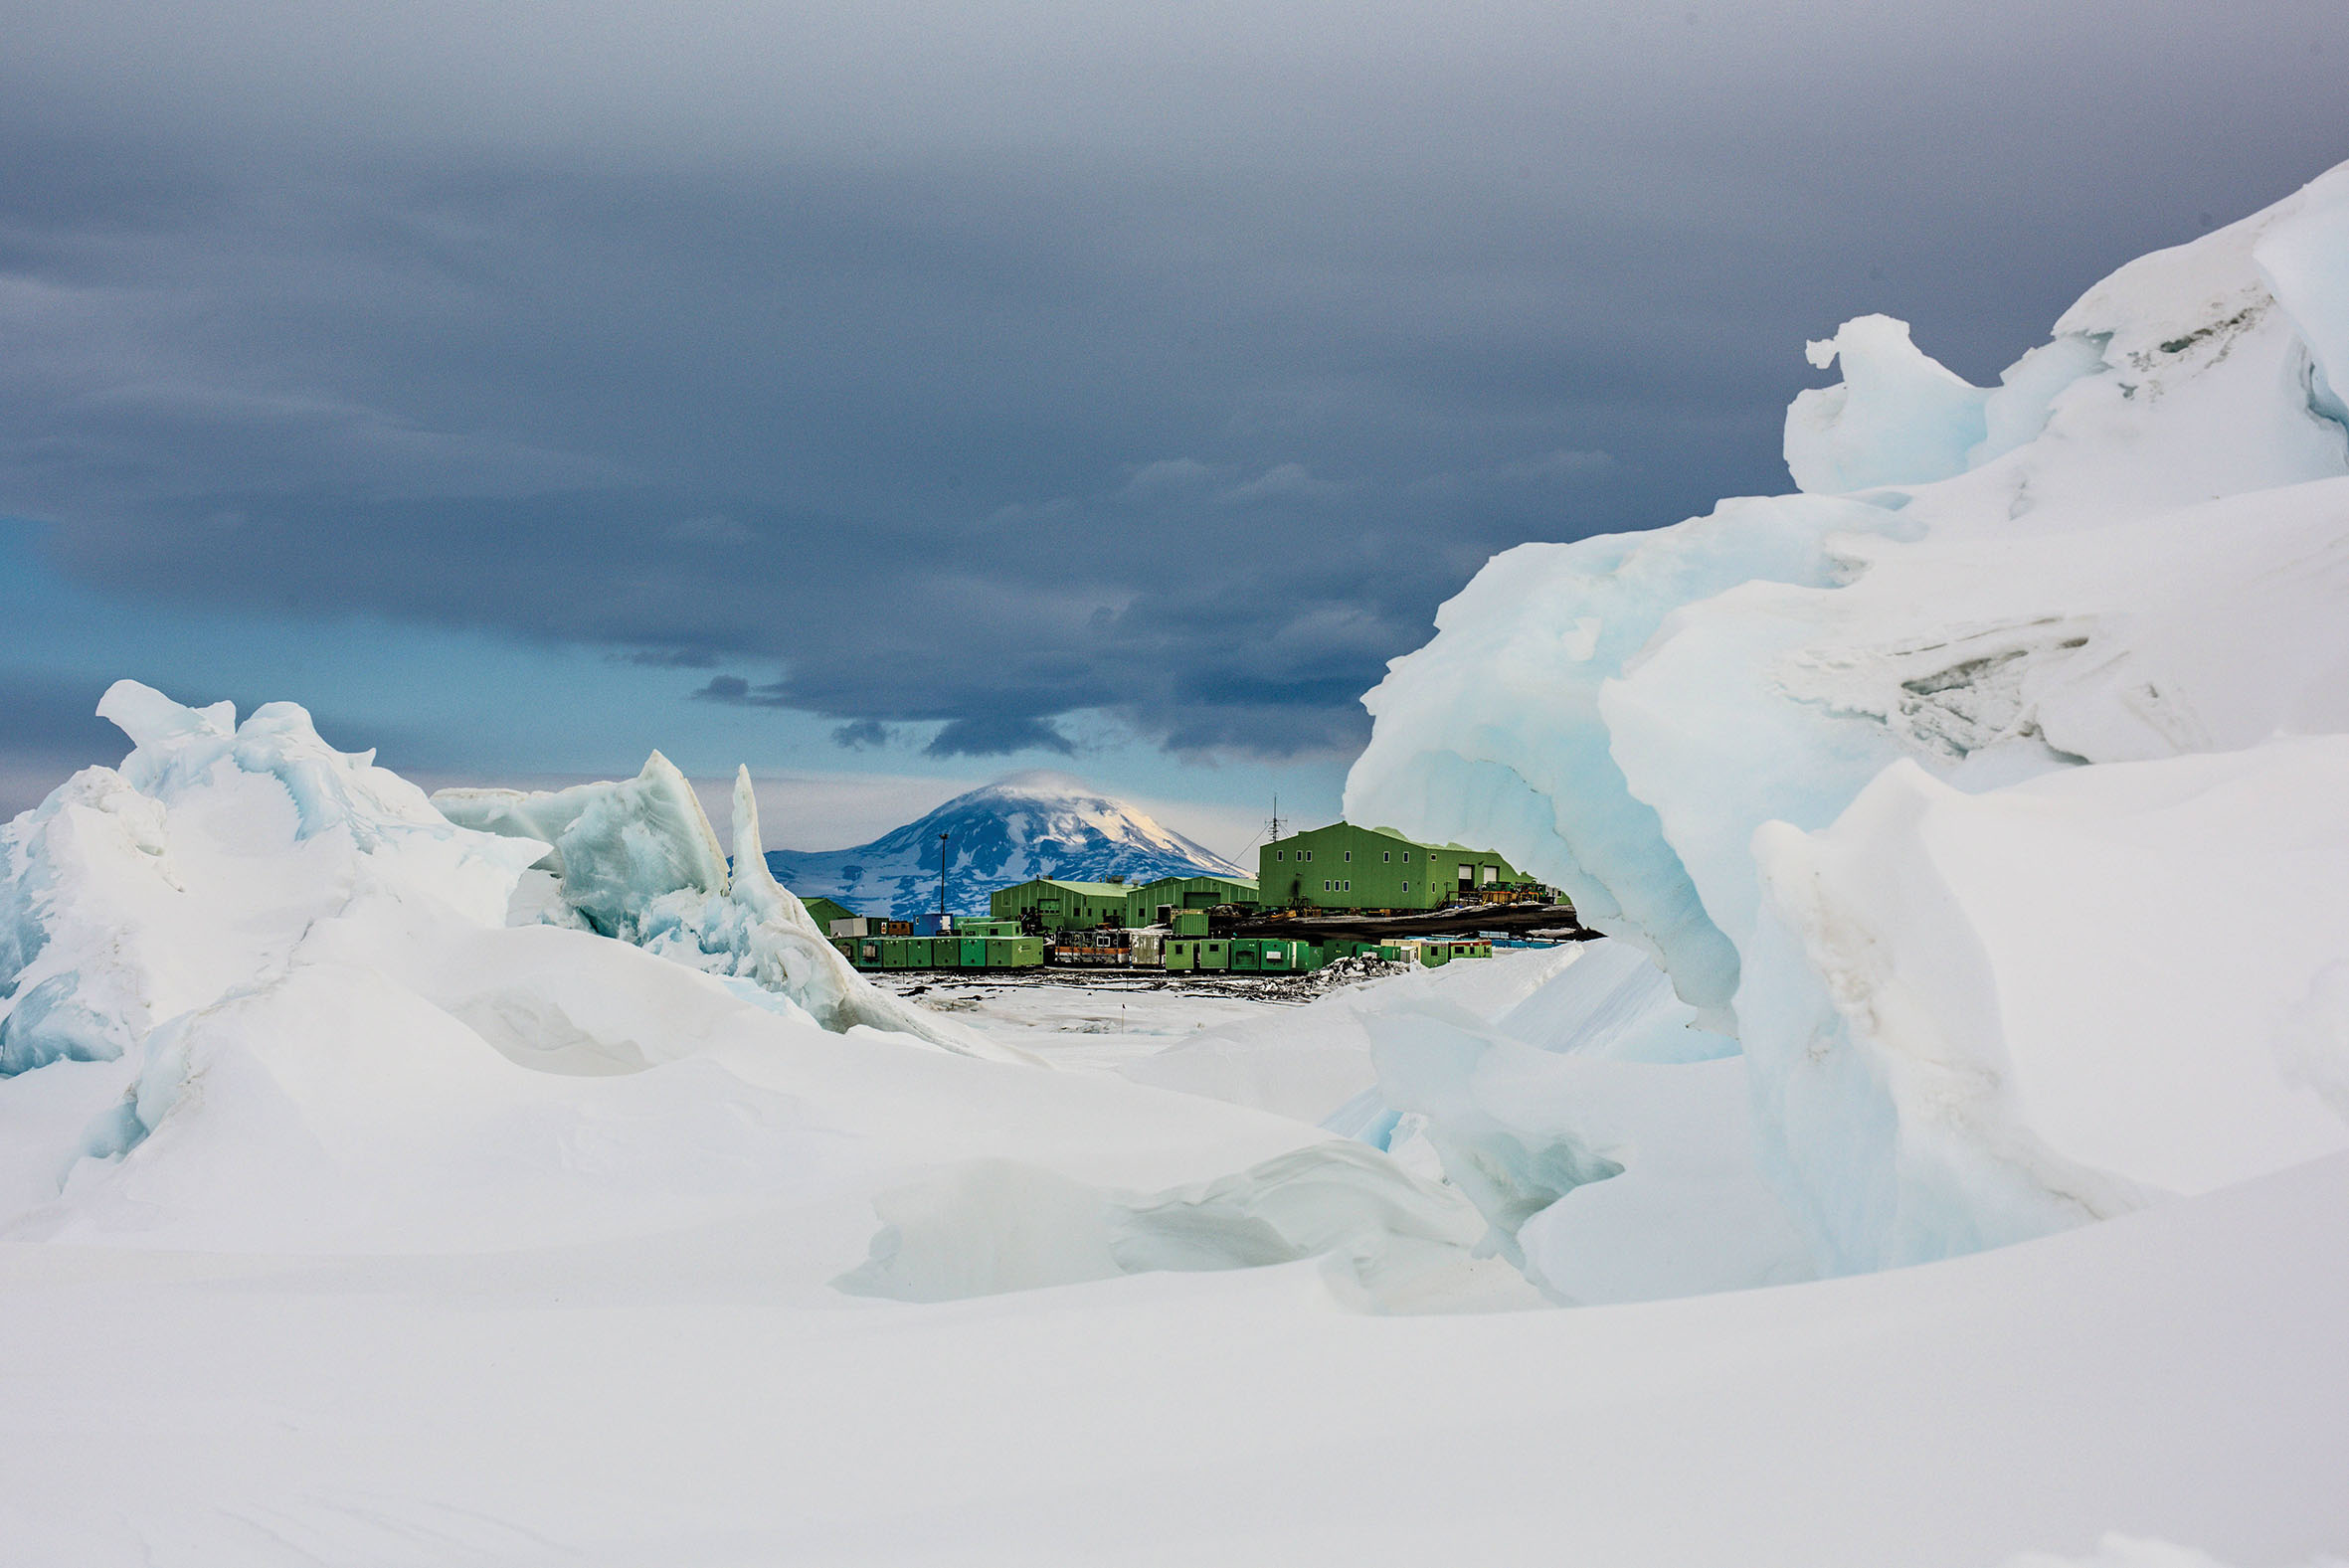 ANTARCTICA- Scenic photo of the Antarctic landscape, with Scott Base in the background. (Photo credit: NG Studios/Marcus Arnold)